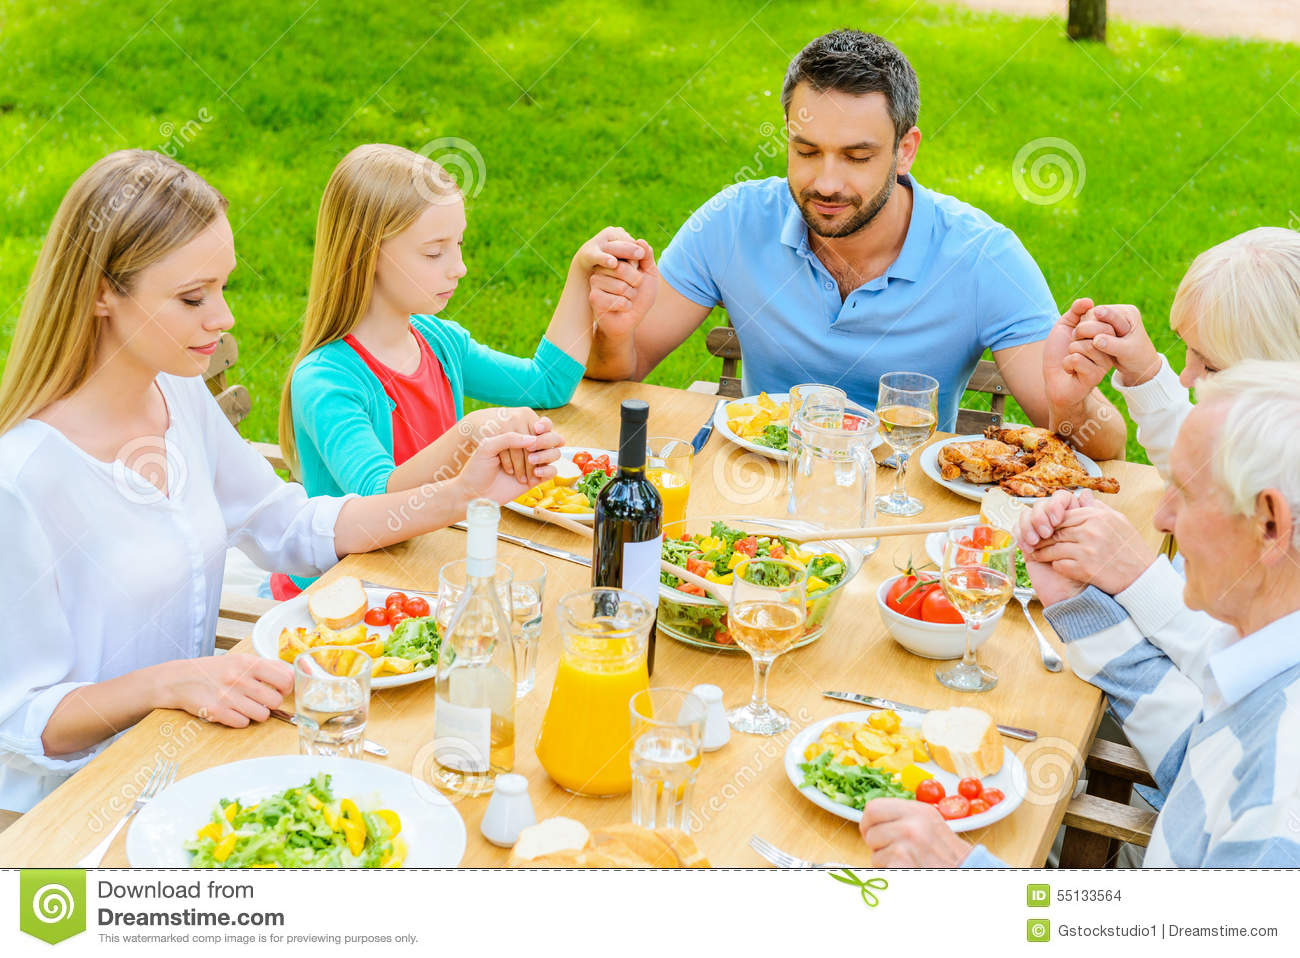 family praying at dinner - 1023×683